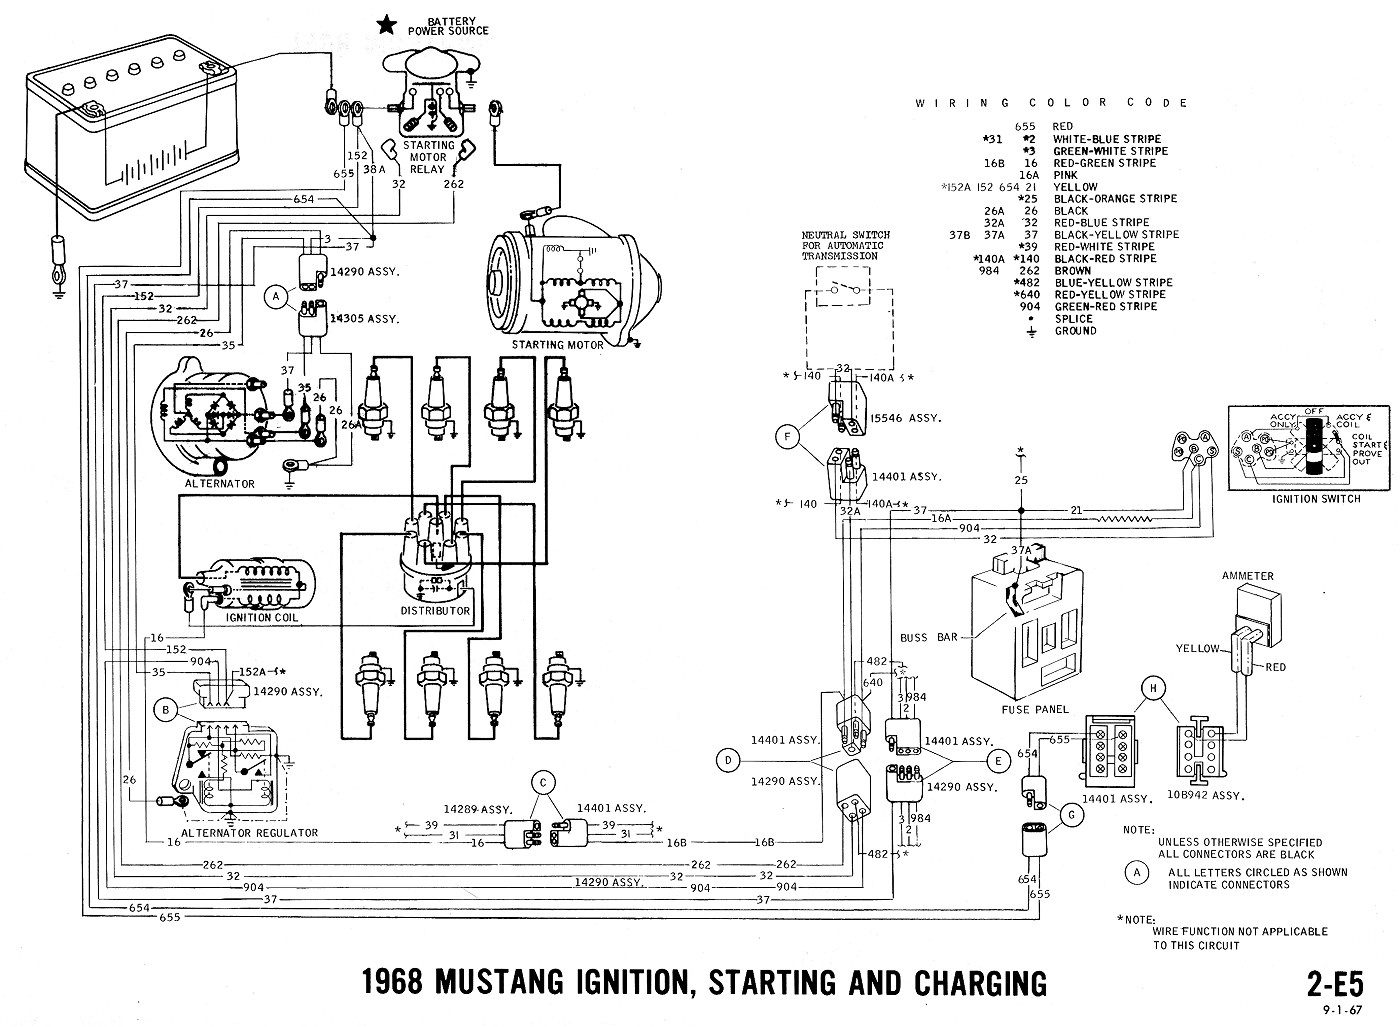 Alternator Wiring Diagram For 1965 Mustang Auto Electrical Wiring 1975 F100 Wiring  Diagrams 1980 F100 Wiring Diagram